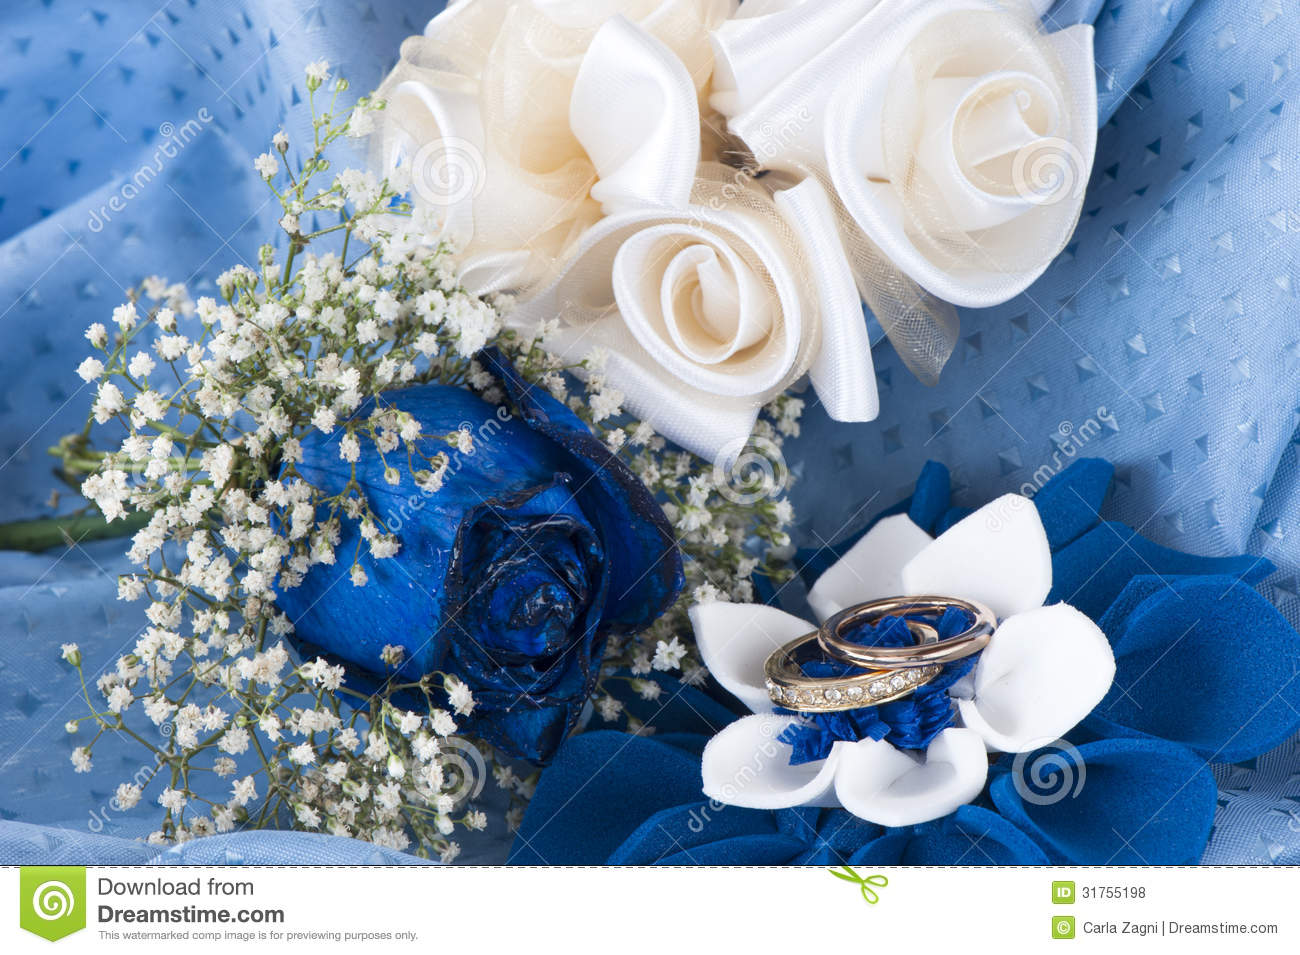 Blue Roses And Wedding Rings Royalty Free Stock Photos   Image